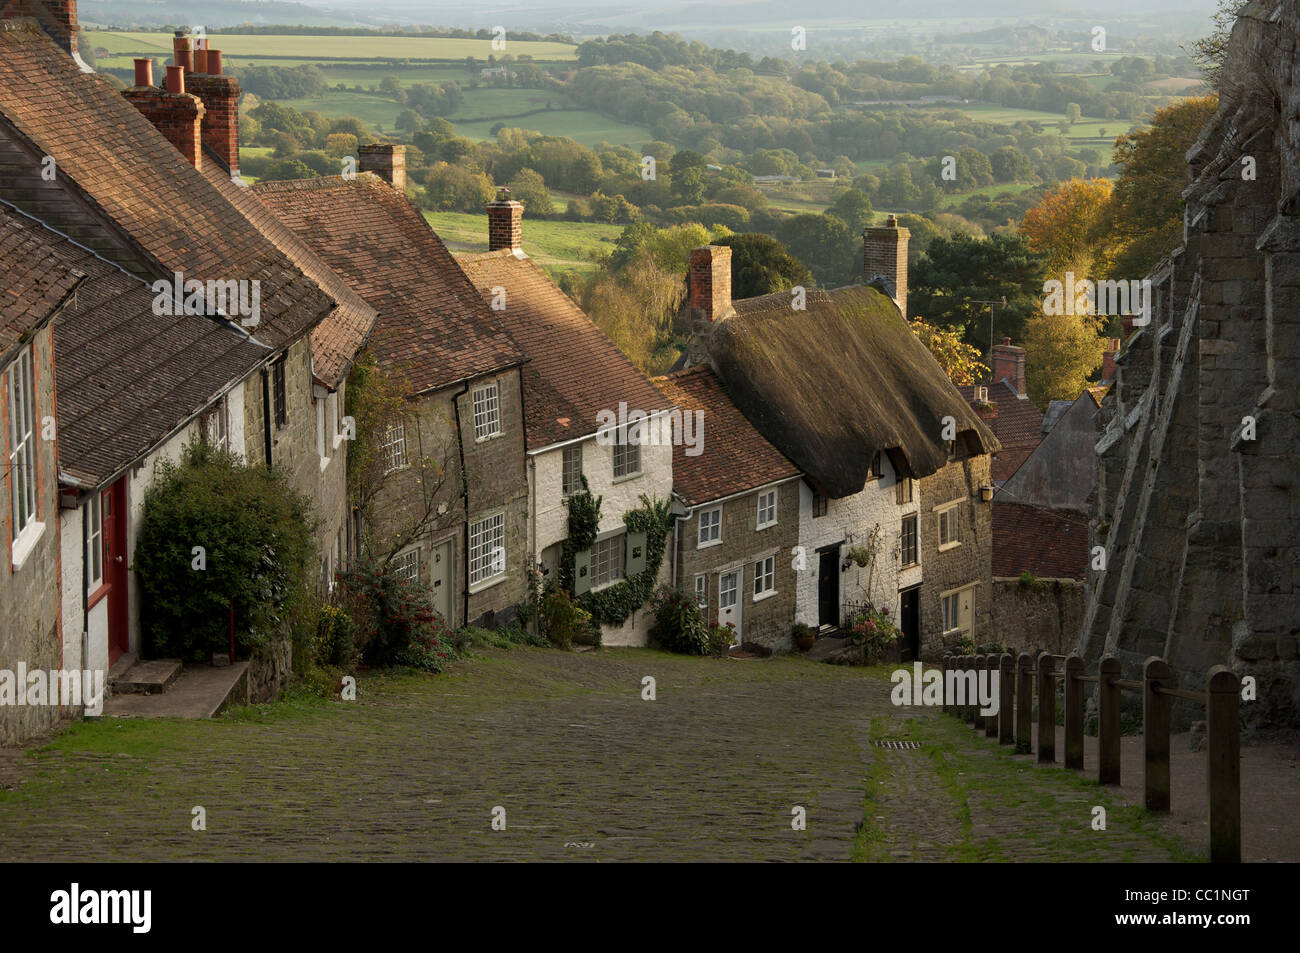 The iconic Gold Hill in Shaftesbury, immortalized in the famous TV advert for Hovis bread directed by the young - Stock Image